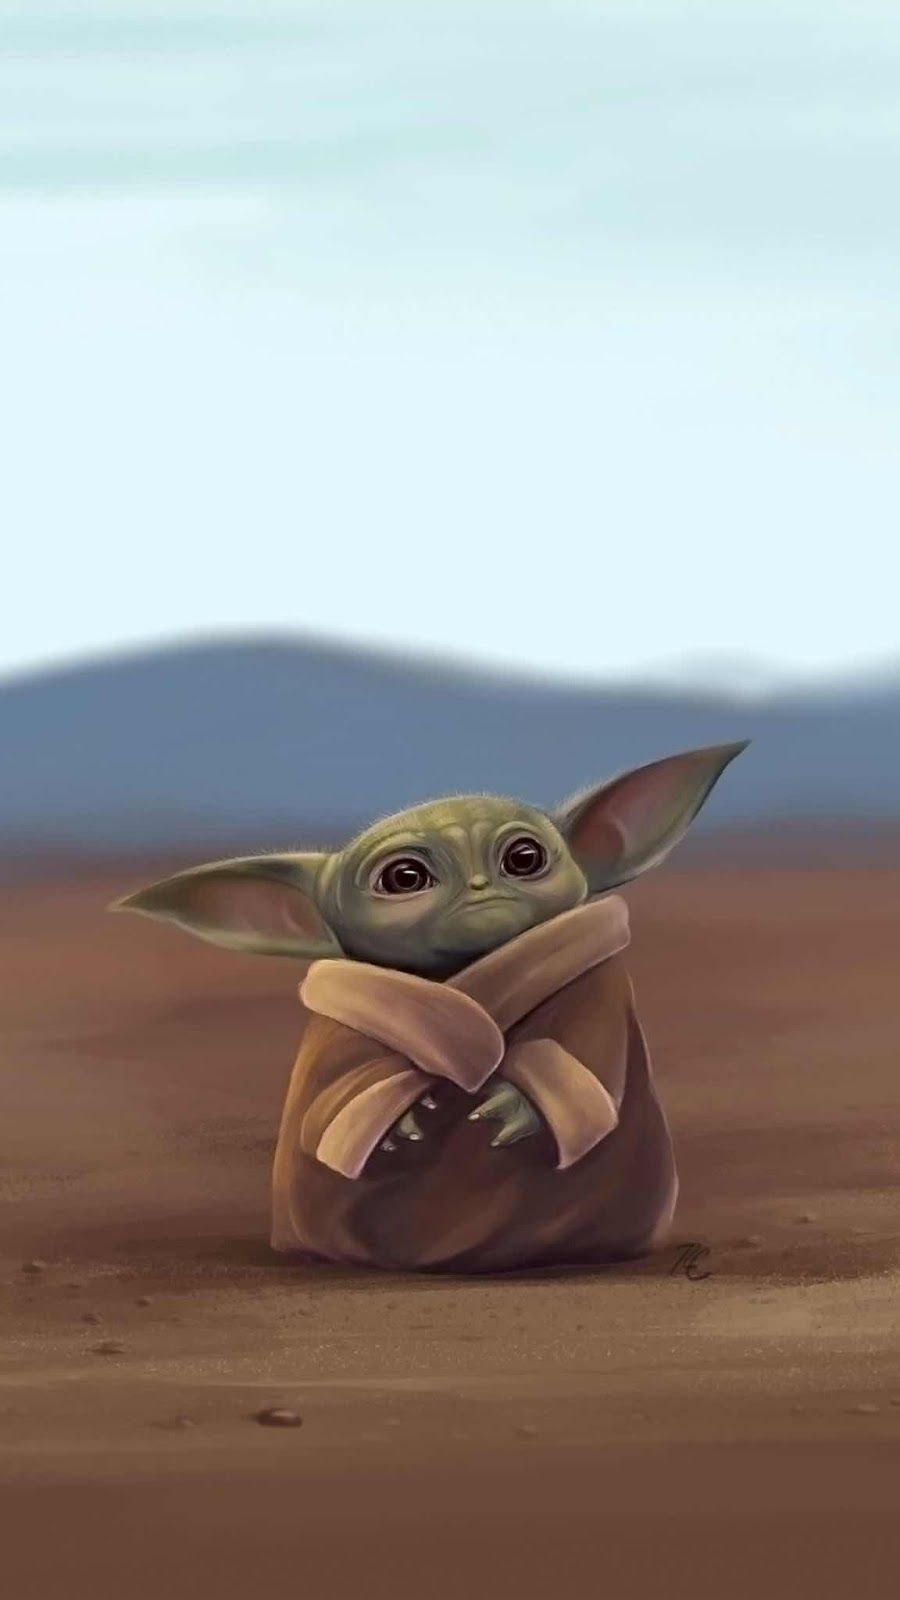 Iphone And Android Wallpapers Baby Yoda Wallpaper For Iphone And